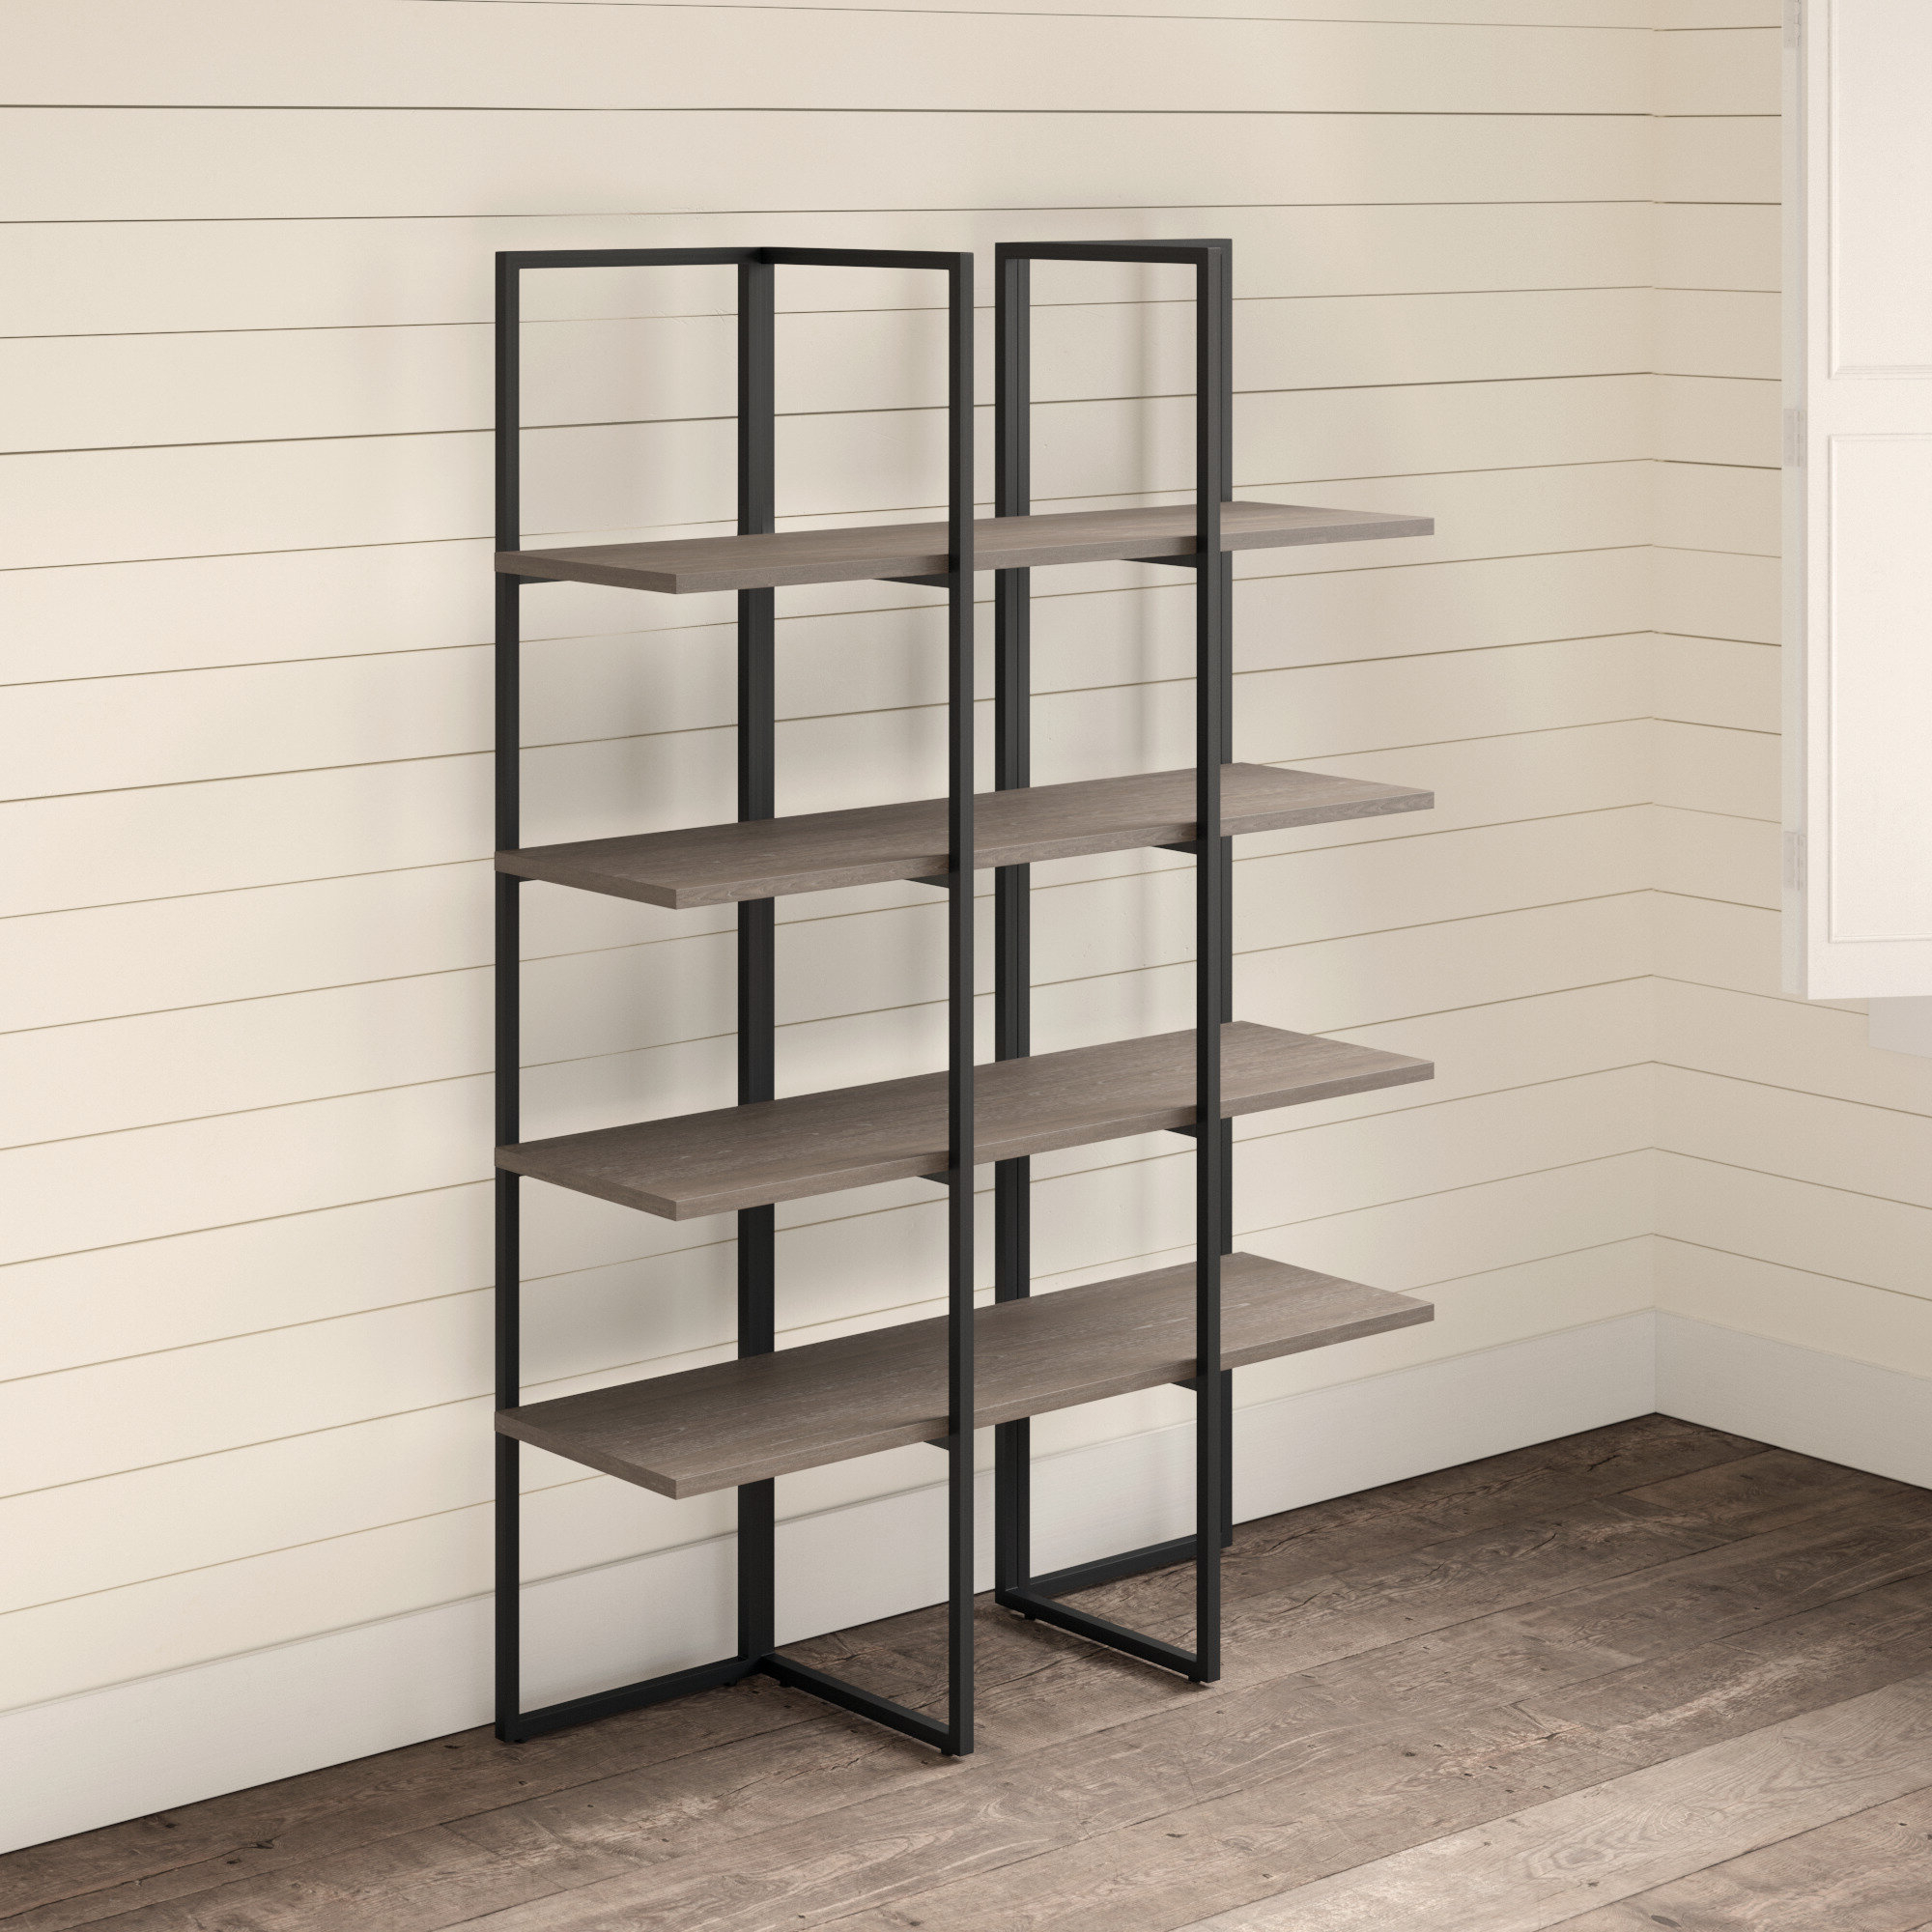 Annabesook Etagere Bookcases Inside Best And Newest Keeble Etagere Bookcase (Gallery 7 of 20)